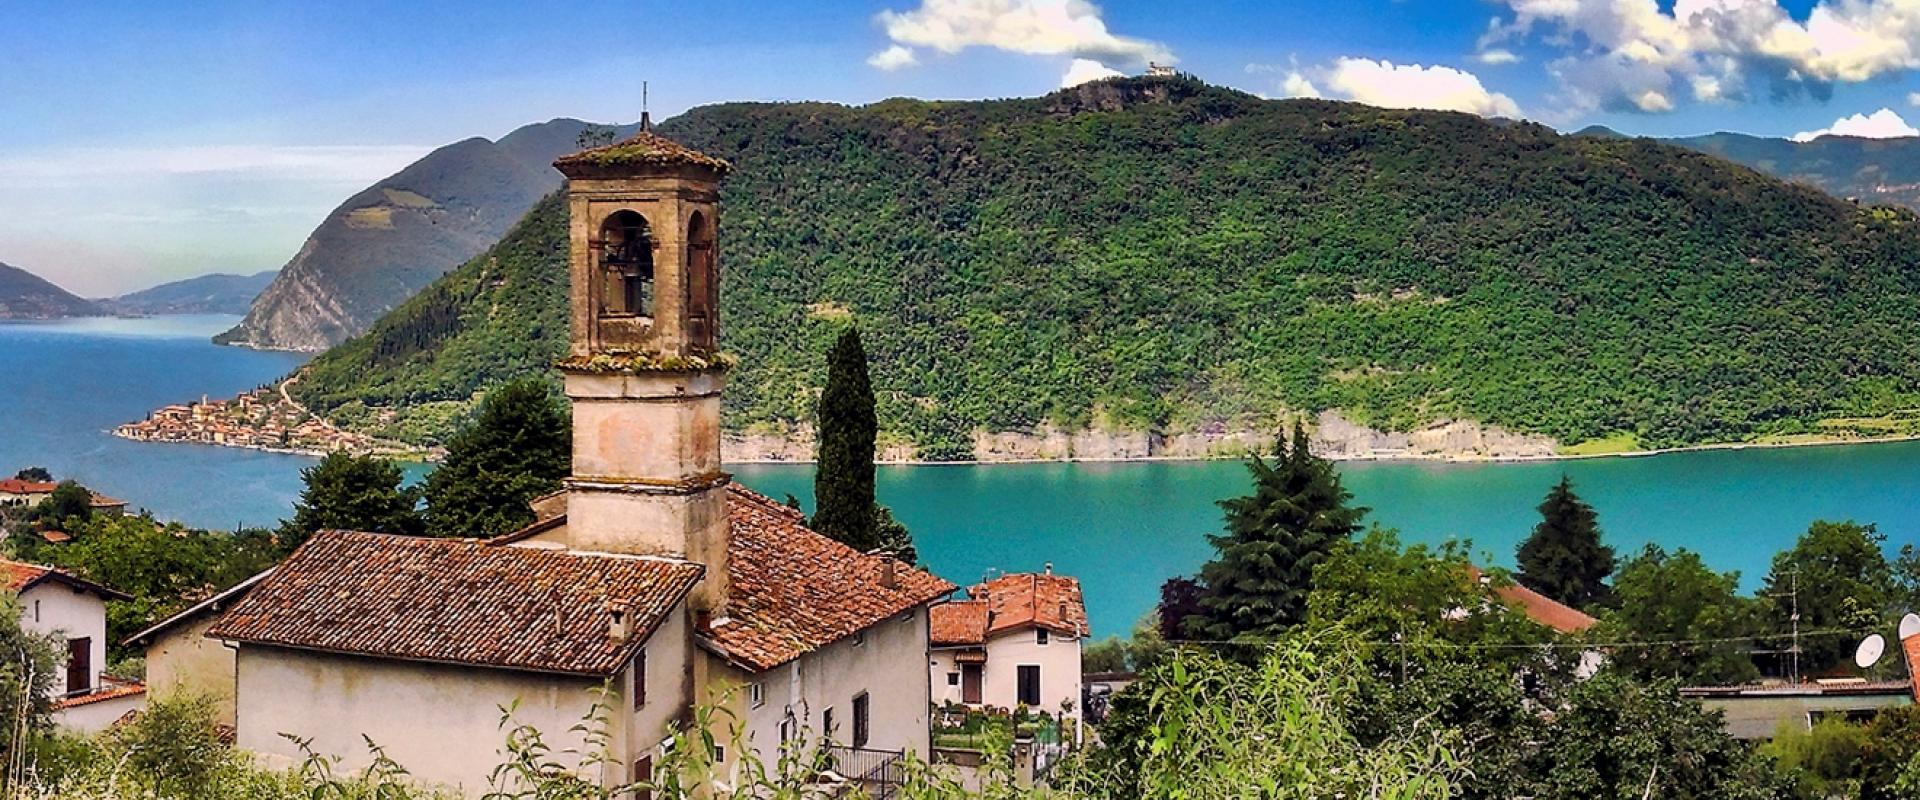 Visit of monte Isola